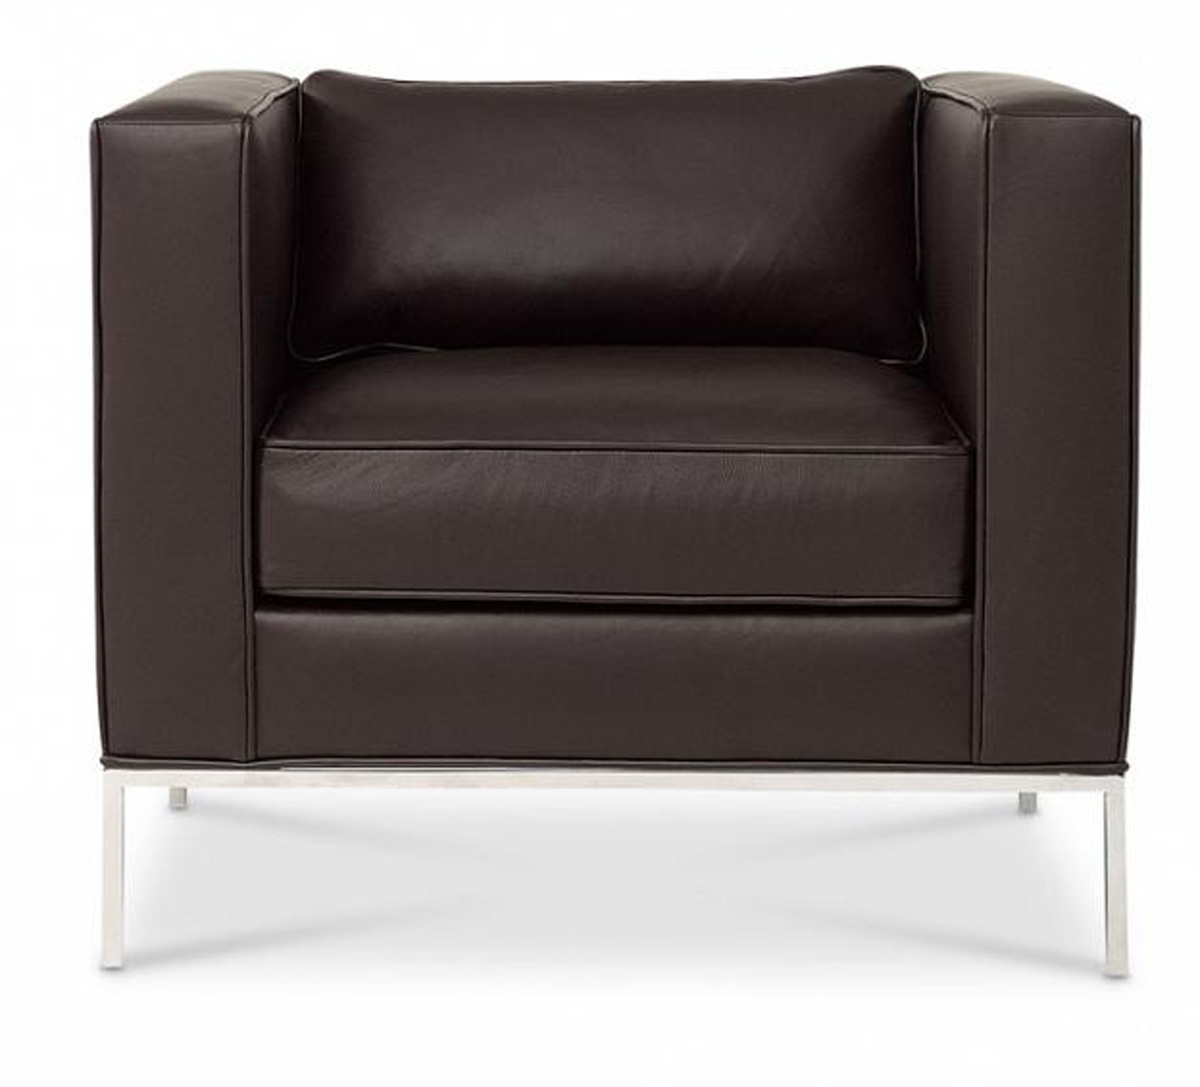 Domicile Tufted Square Lounge Chair